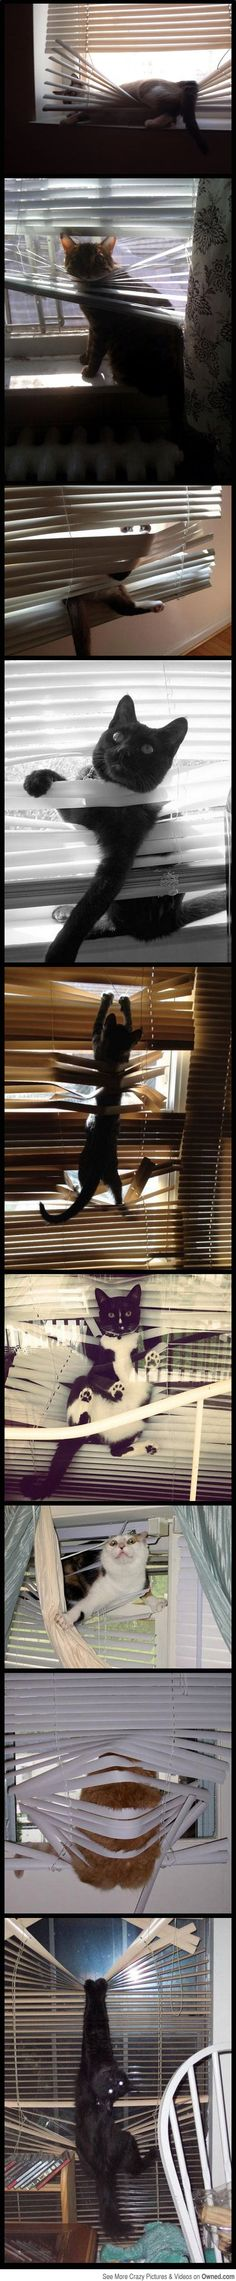 Cats VS Blinds...can't stop laughing because of the number of blinds I have had to replace because of Nike...